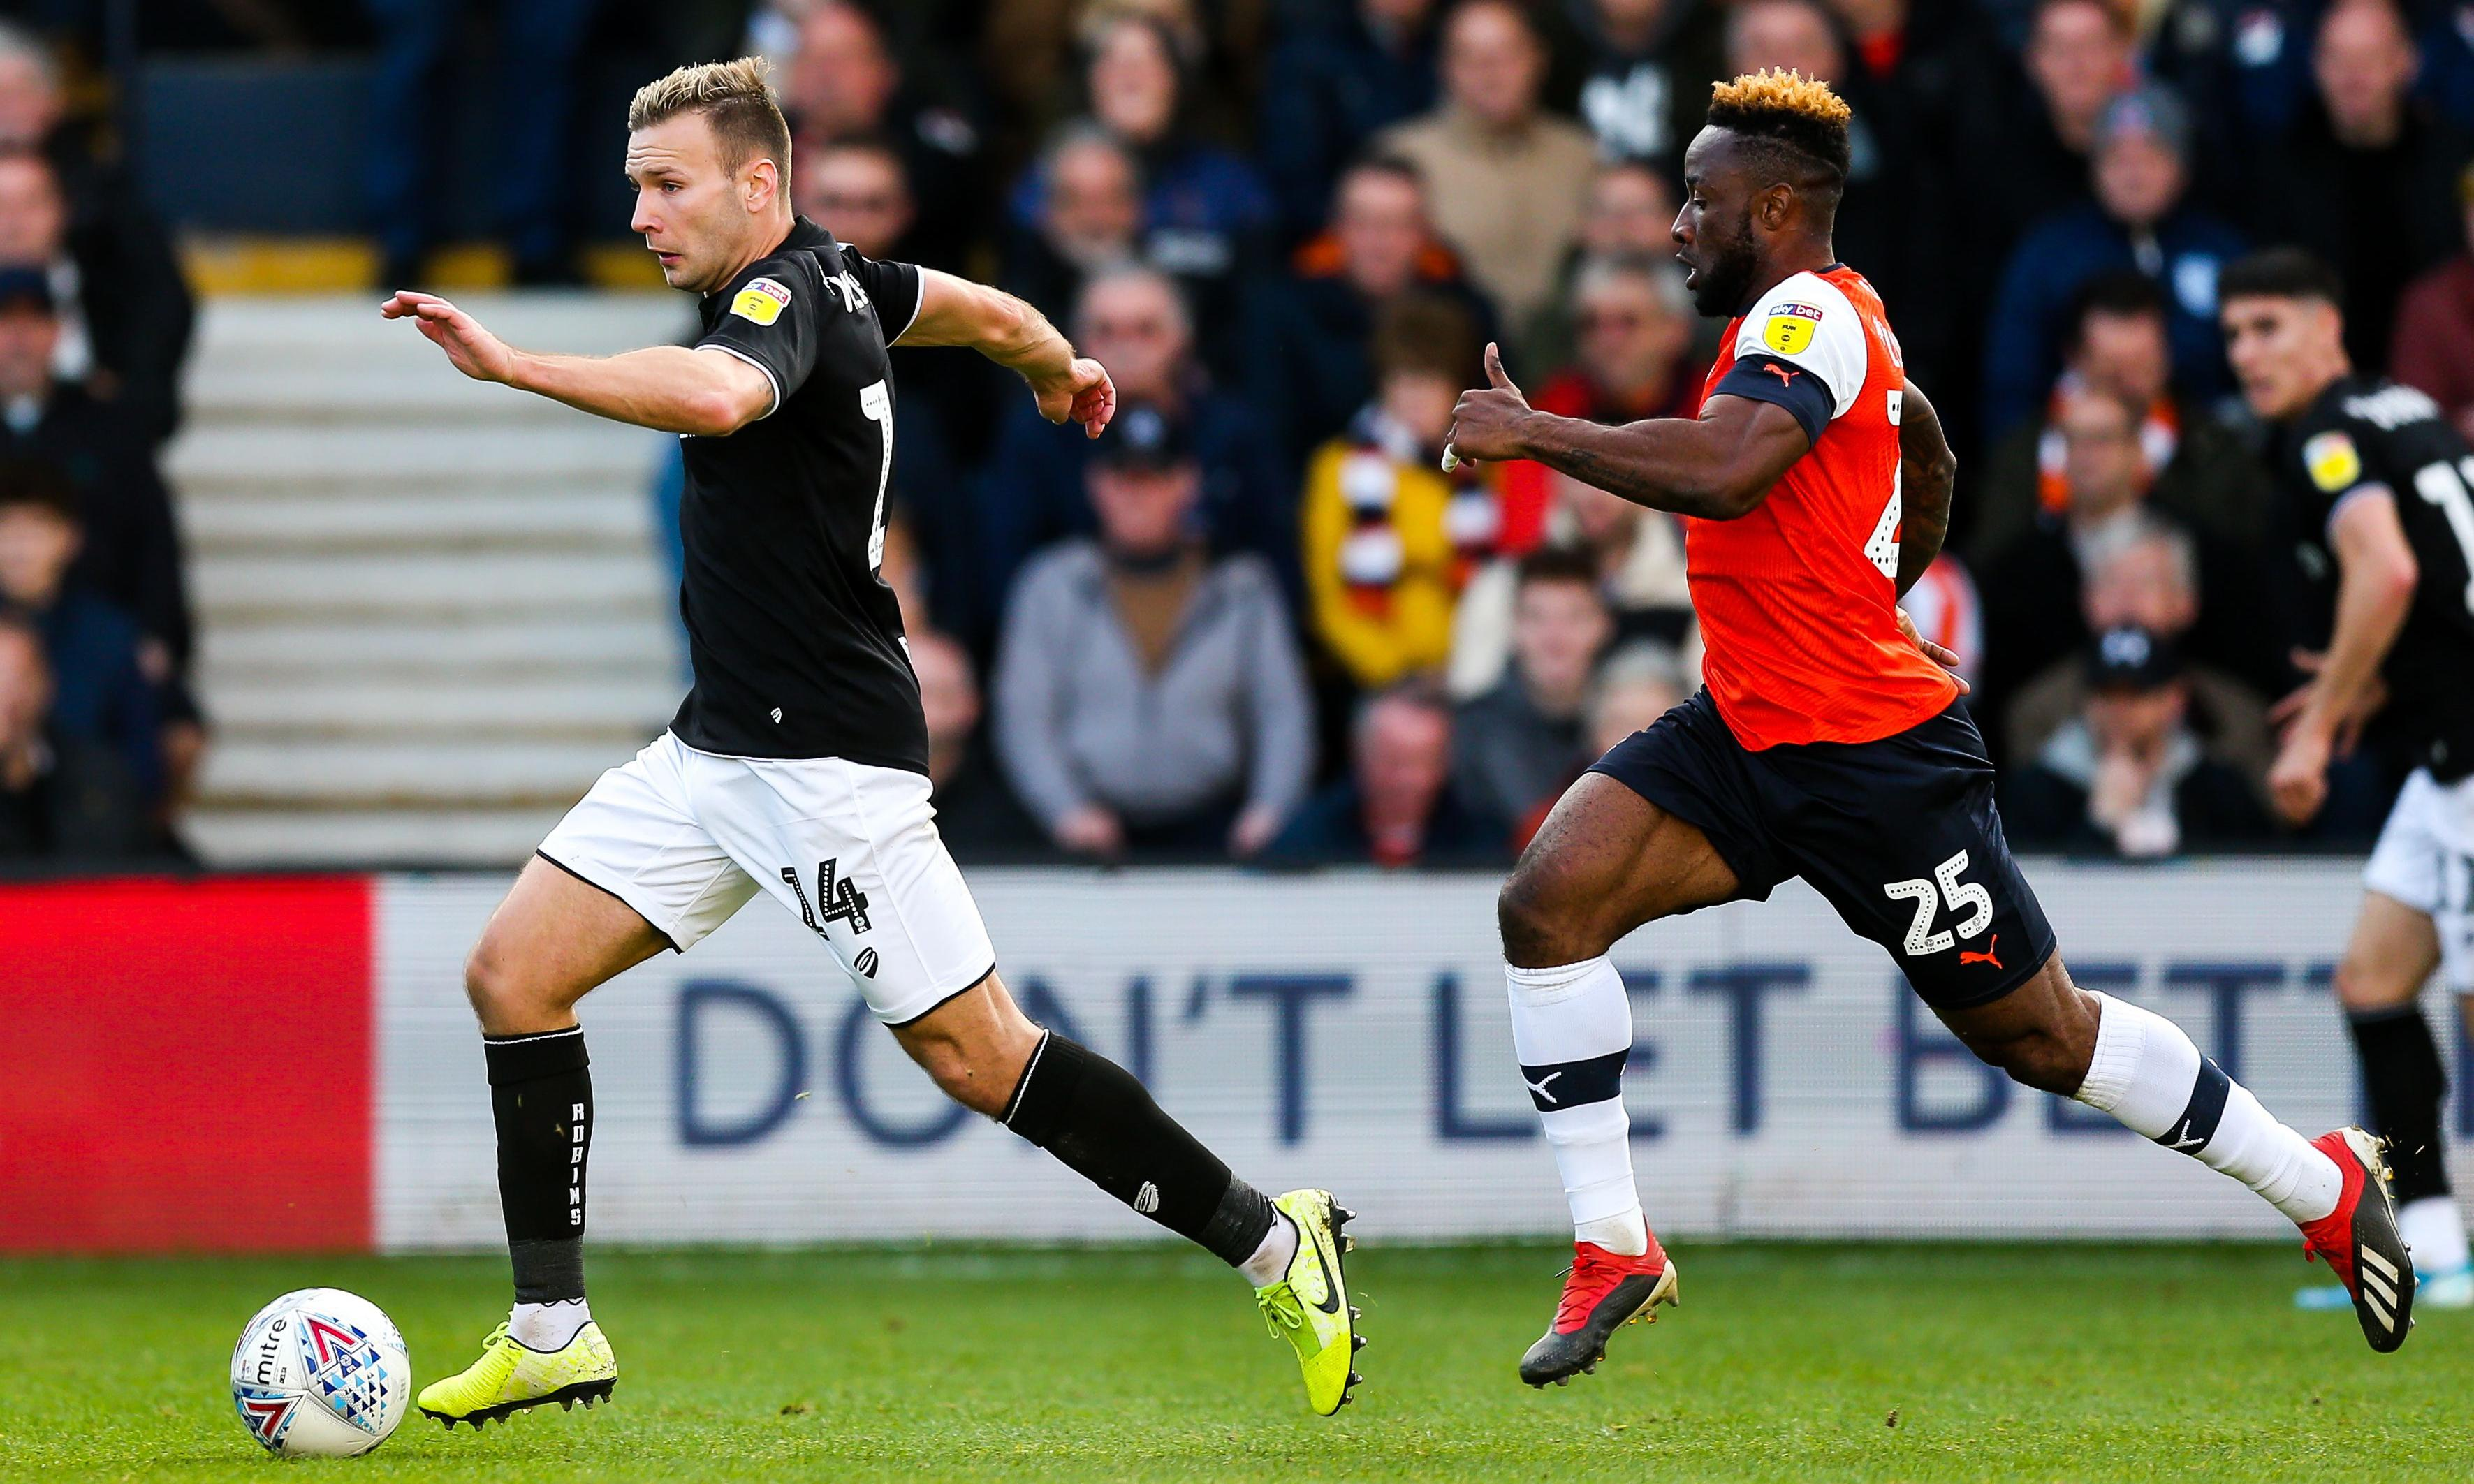 Bristol City investigate alleged racist chants by their fans at Luton supporters